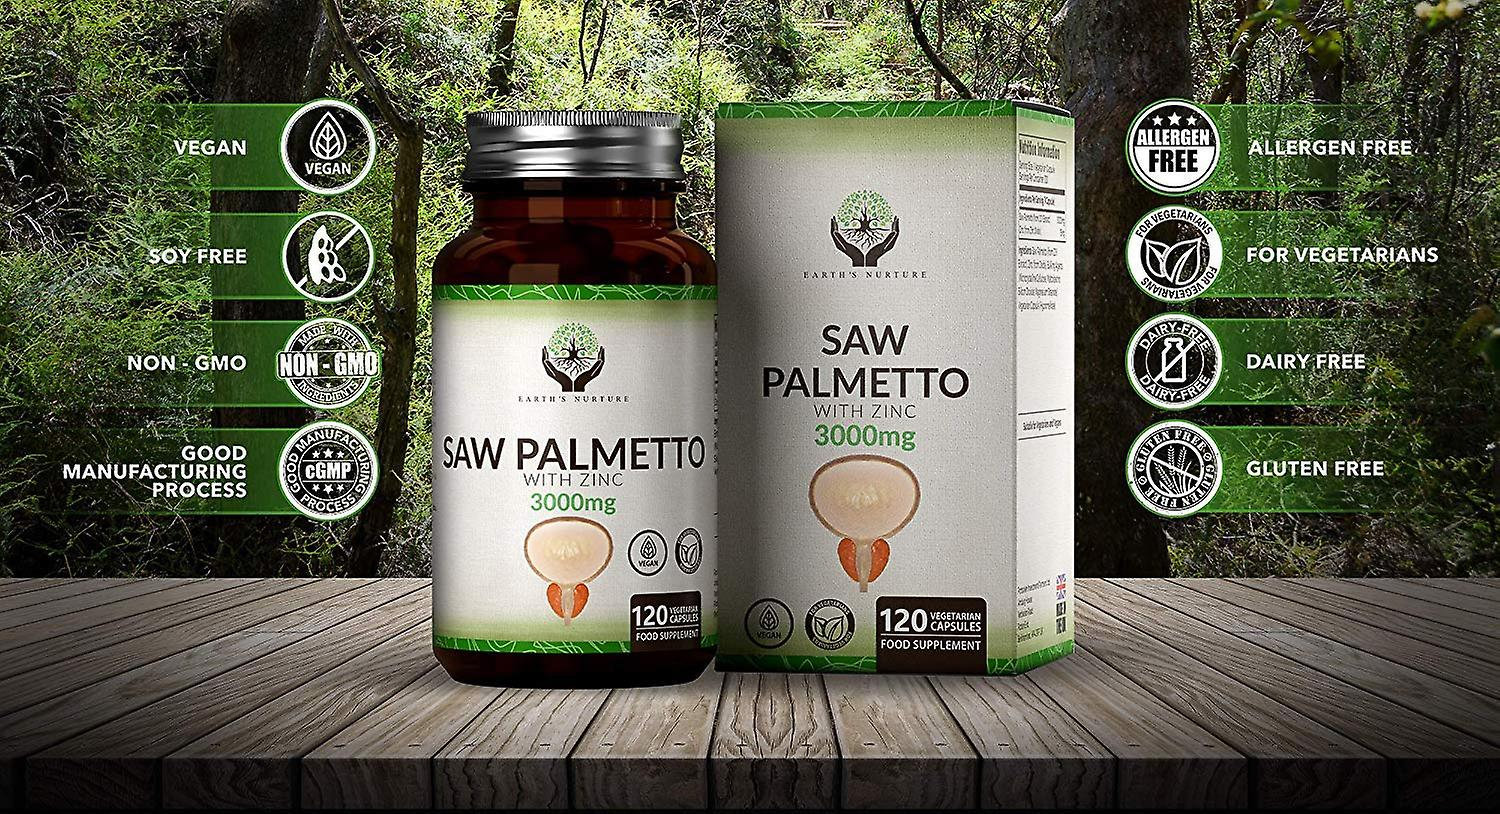 Earth's Nurture Saw Palmetto Extract with Zinc (3000mg) Capsules